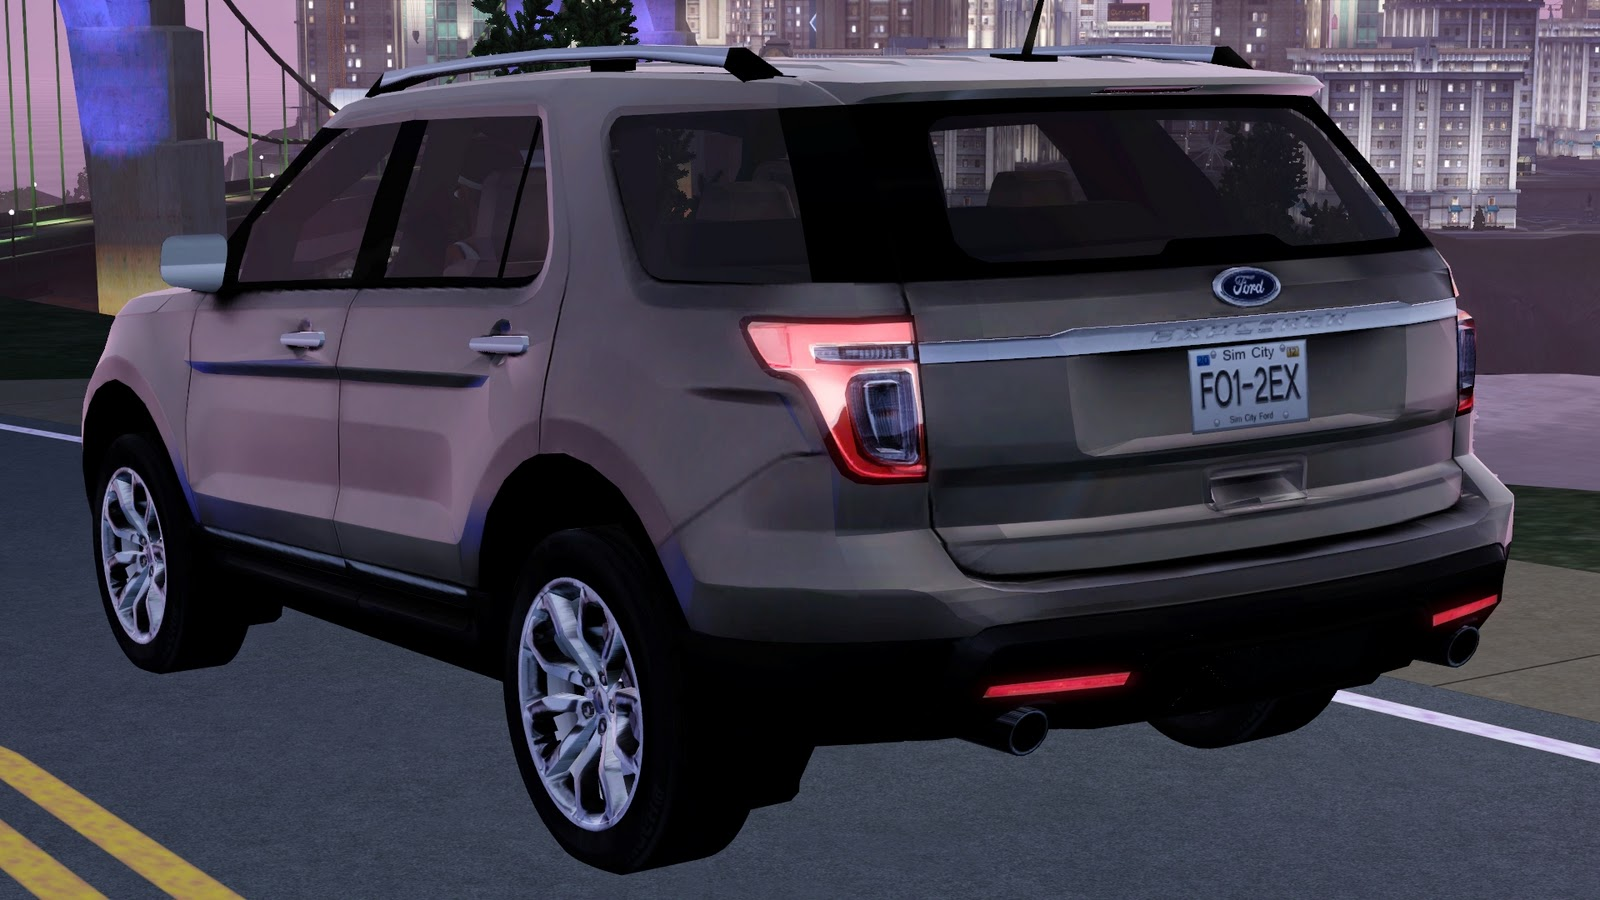 my sims 3 blog 2012 ford explorer by fresh prince. Black Bedroom Furniture Sets. Home Design Ideas